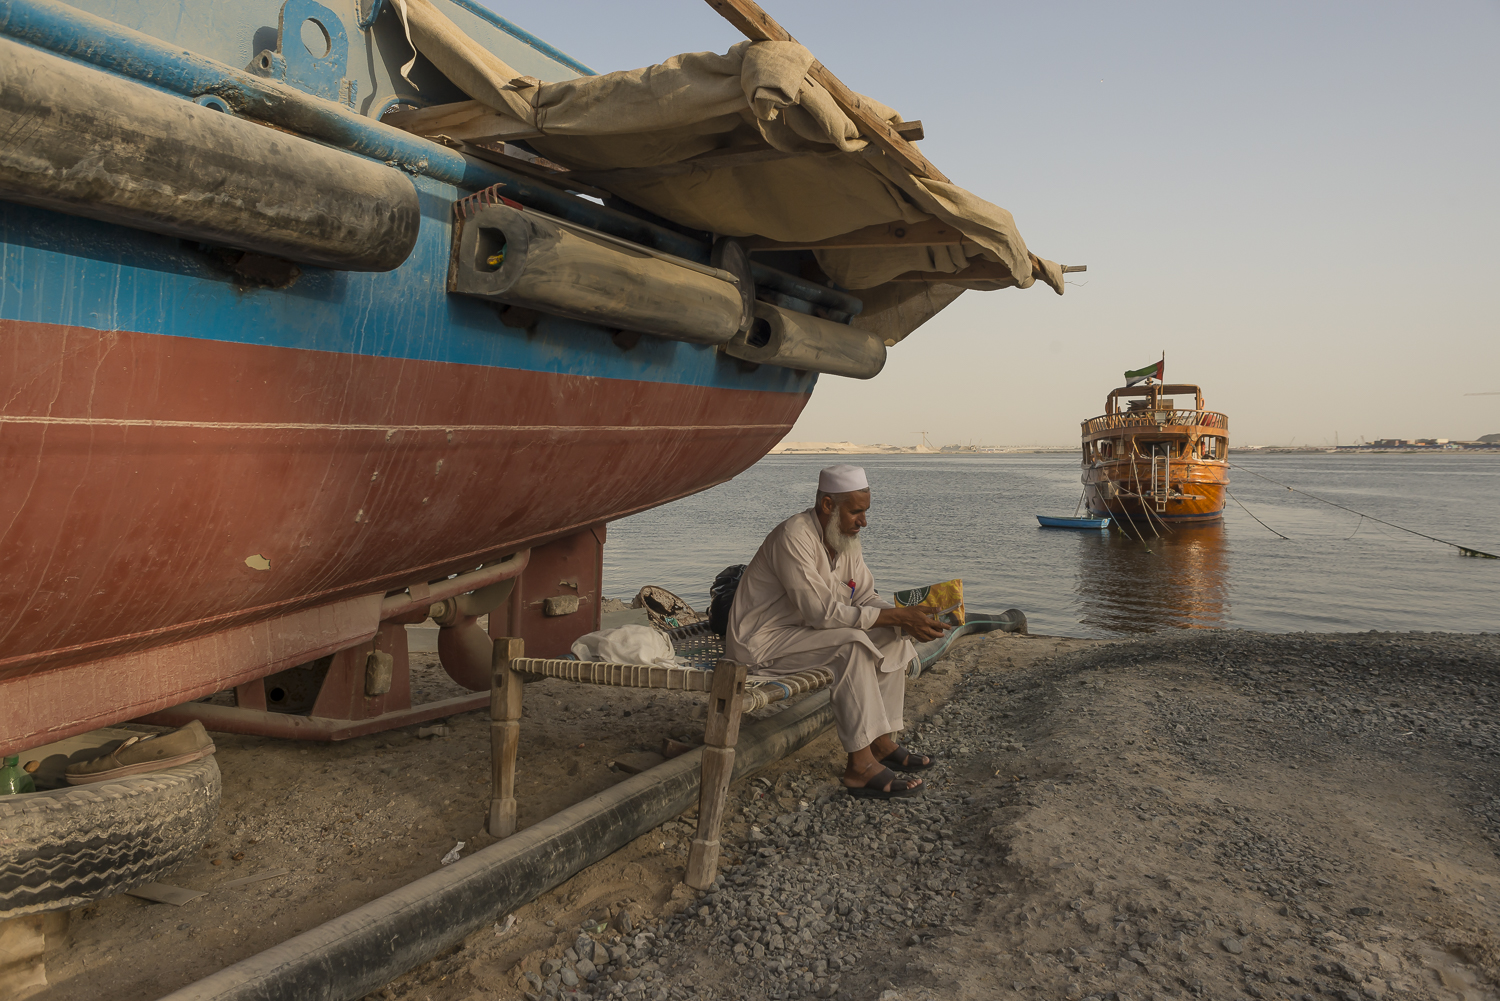 jo-kearney-dhows-building-dubai-migrant-worker-travel-photography-video-migrants.jpg